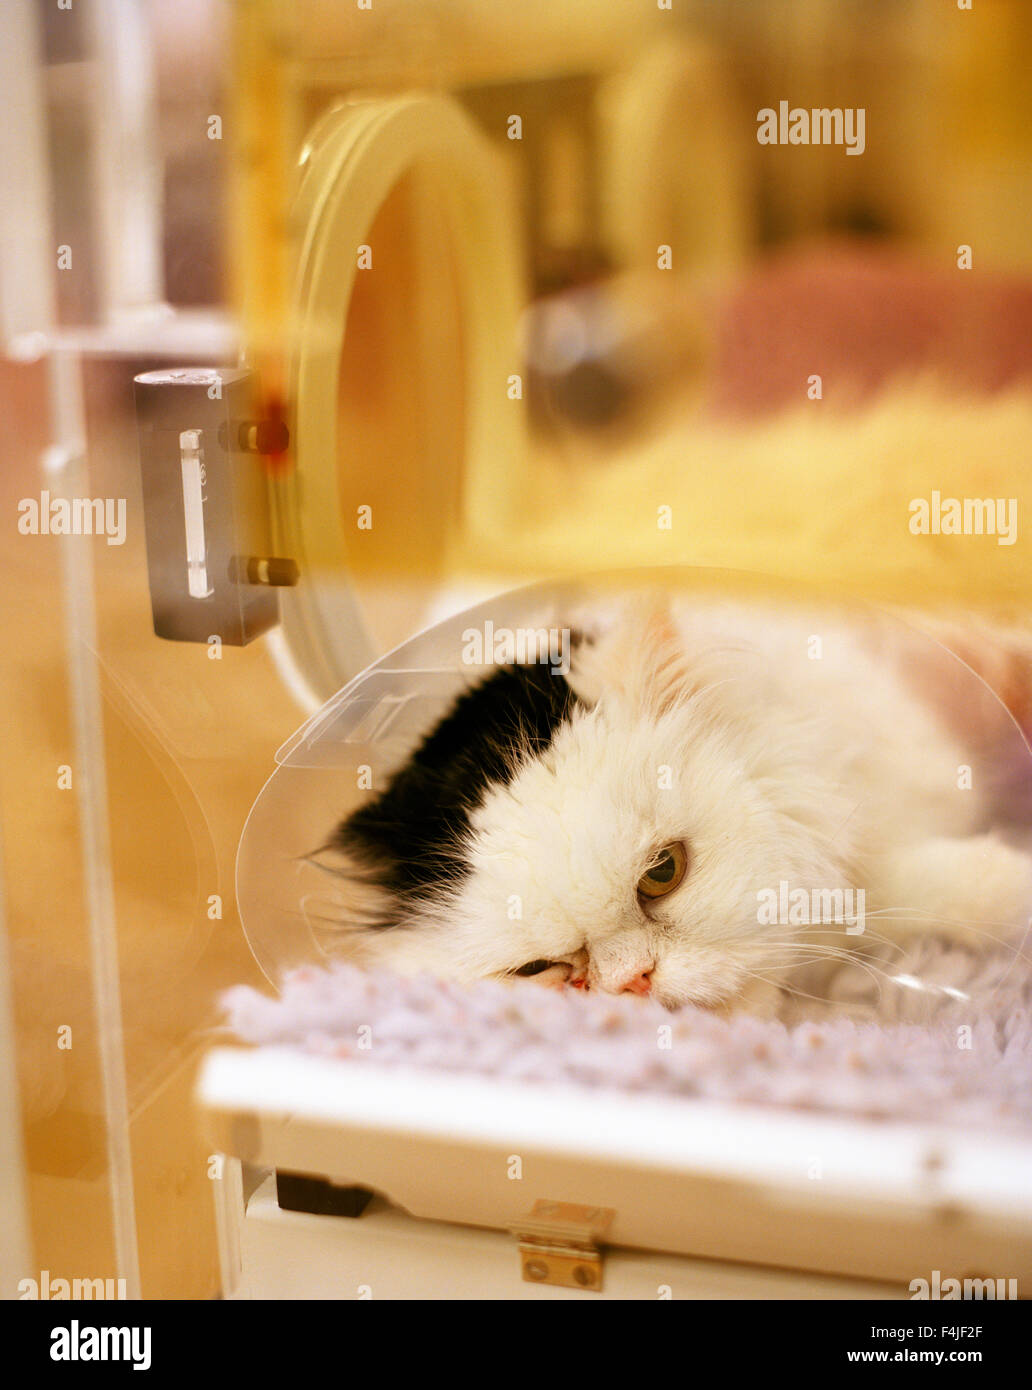 Cat on operating table Stock Photo